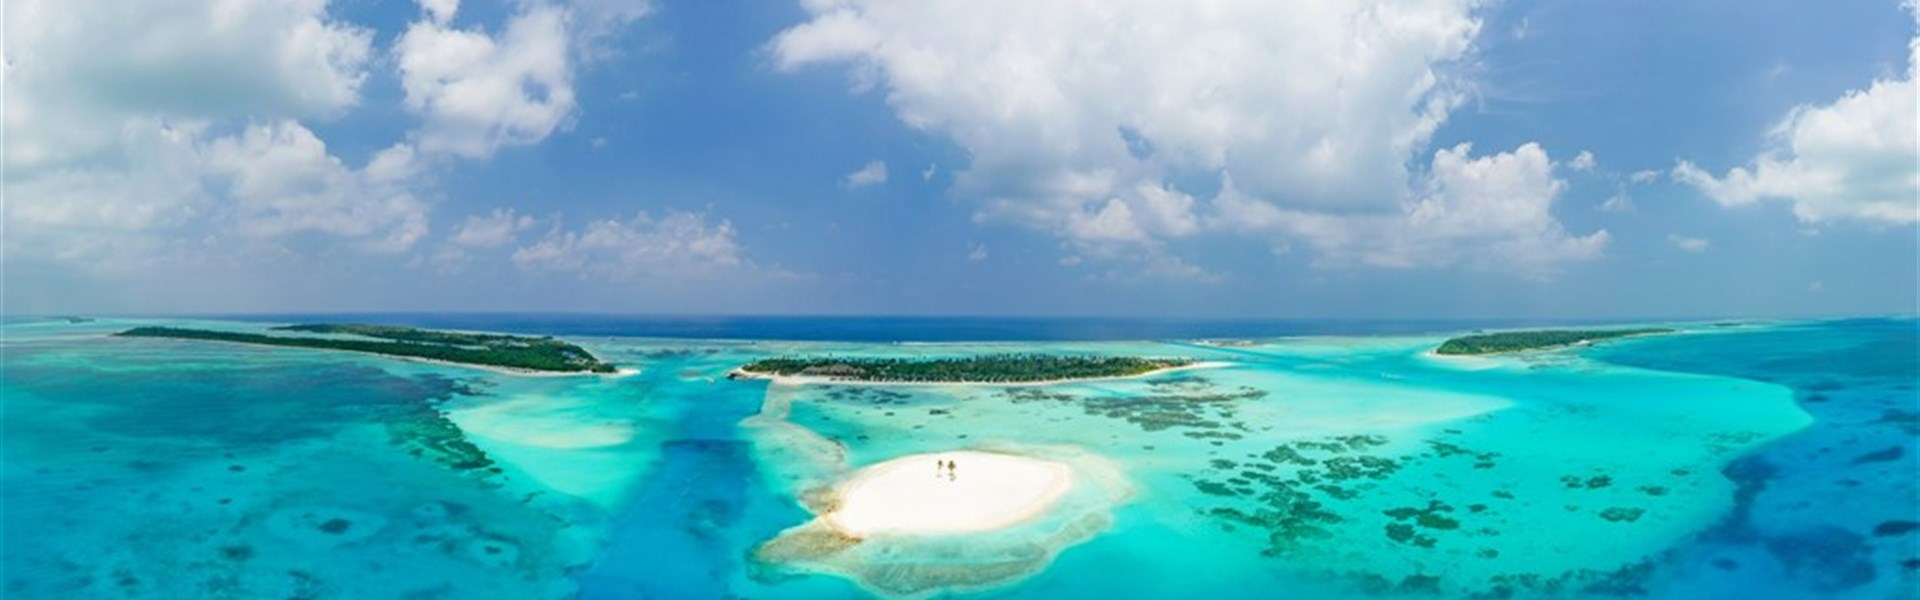 Marco Polo - Innahura Maldives Resort -